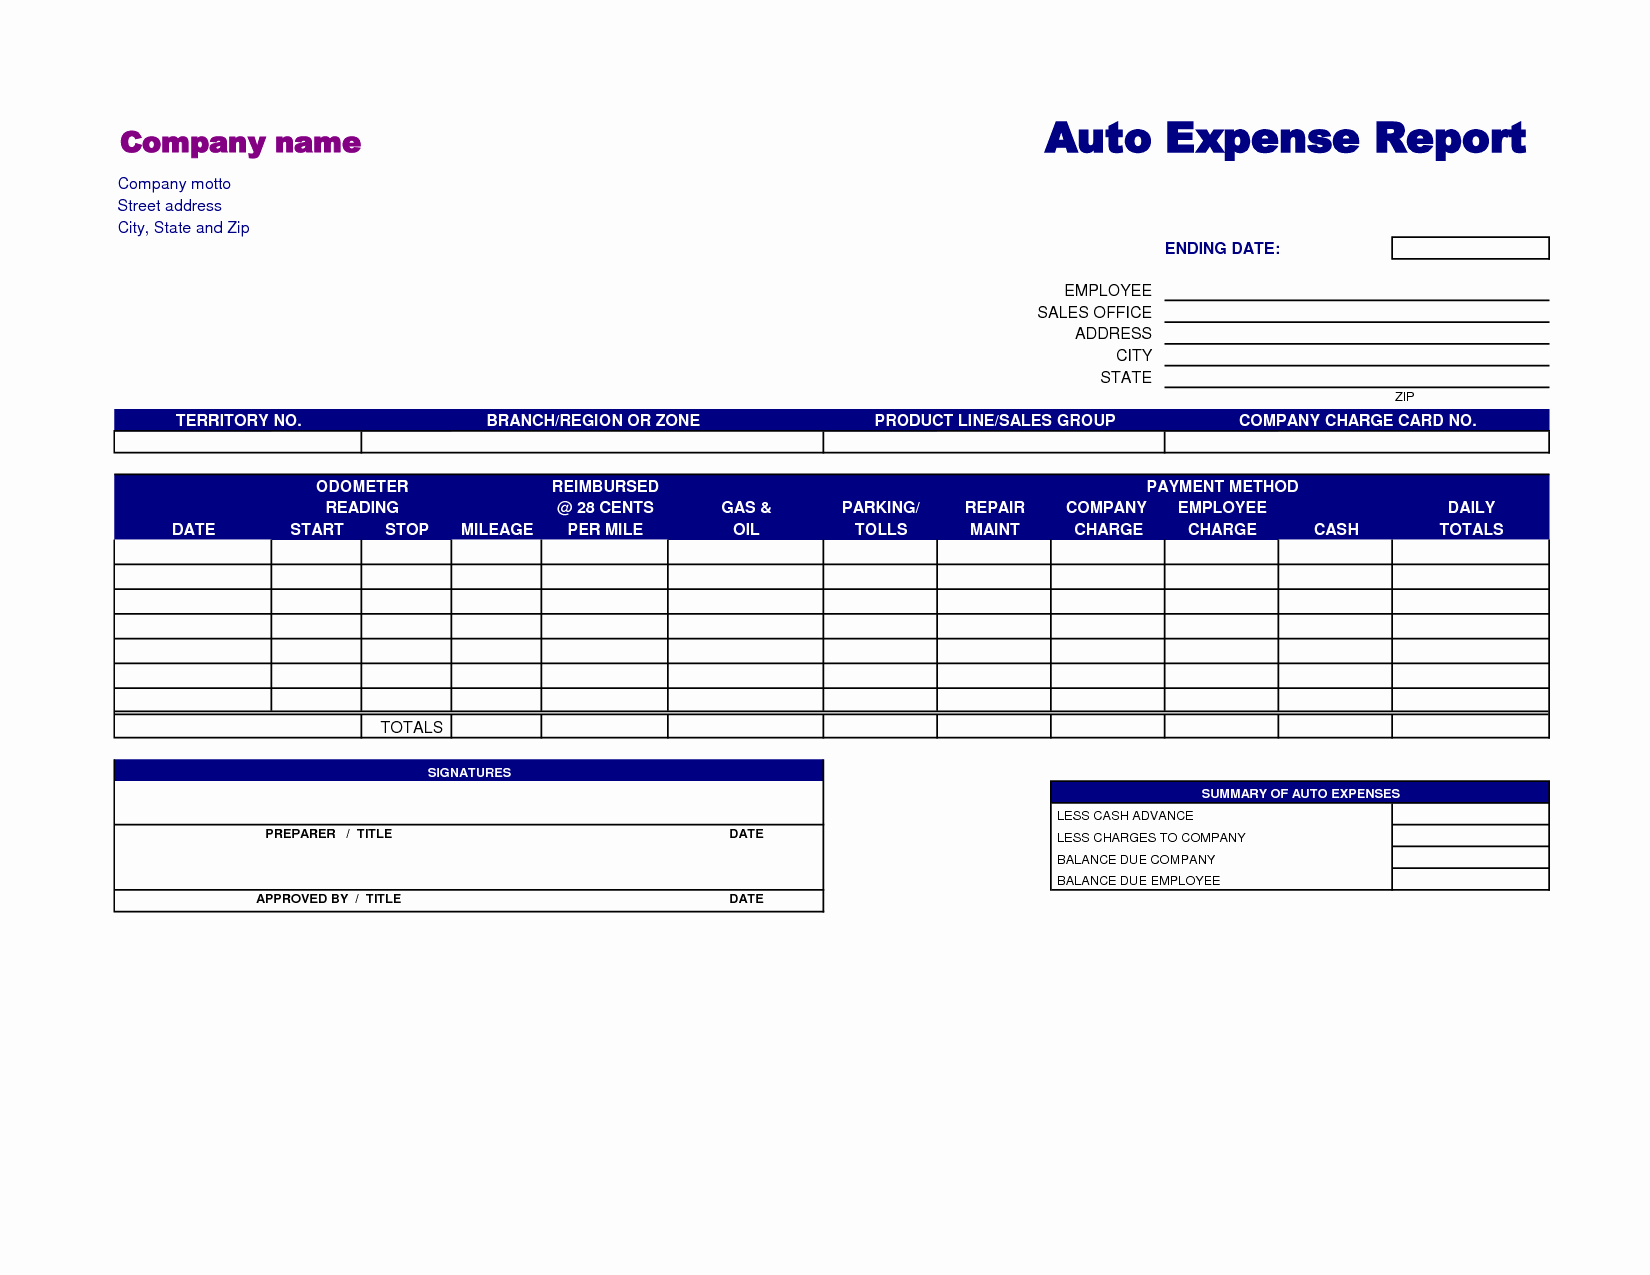 Weekly Expense Report Template Excel Awesome Monthly Expense Report Template 3 Fice Expense Report